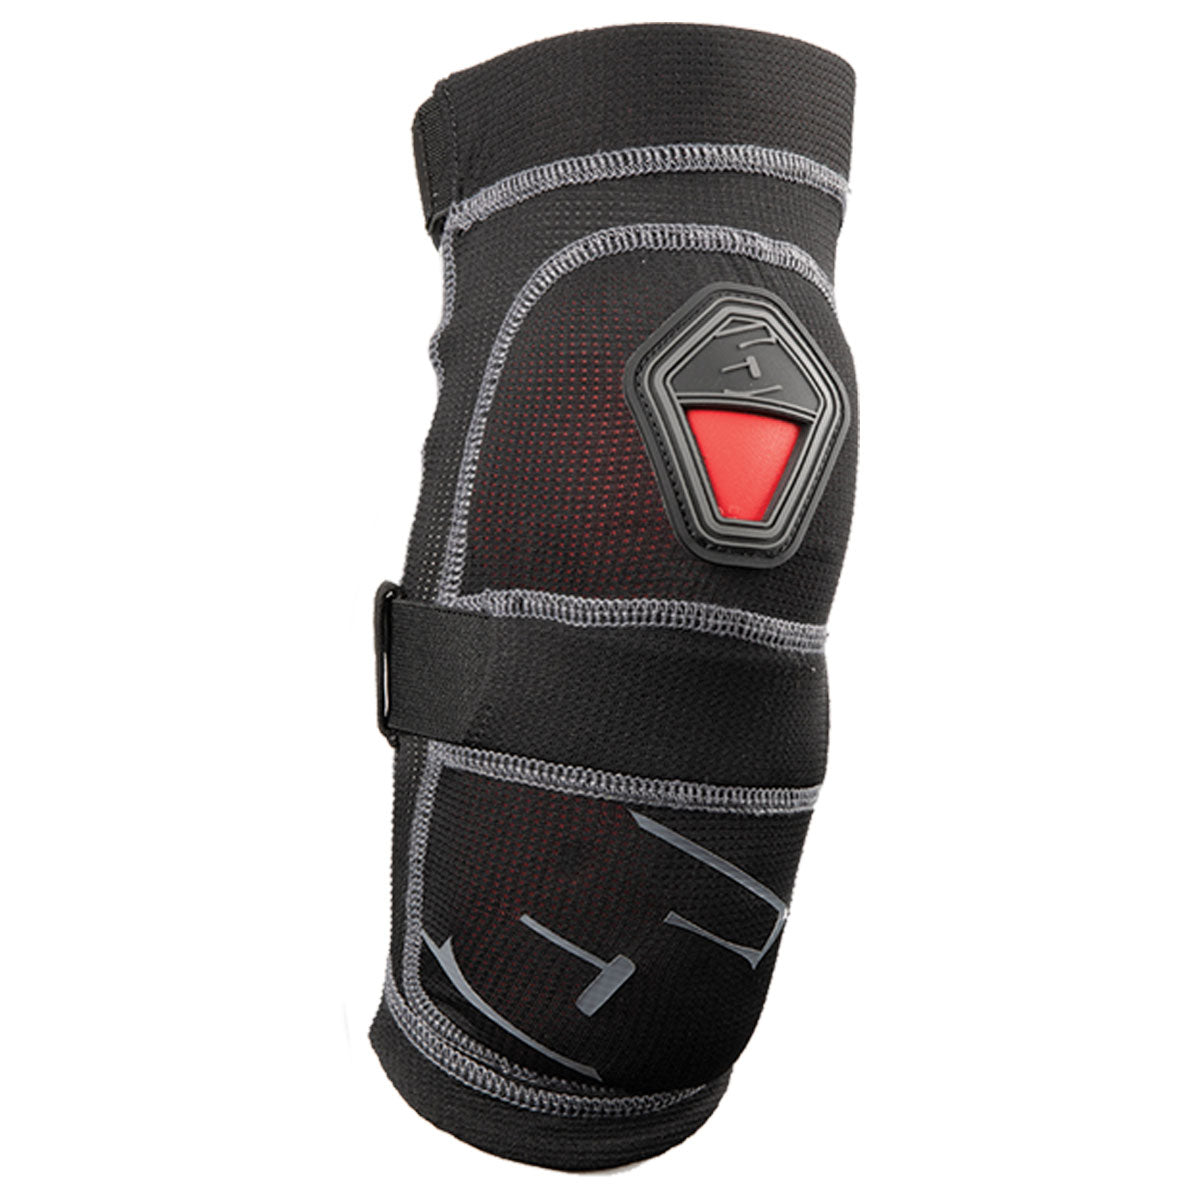 R-Mor Protective Elbow Pads